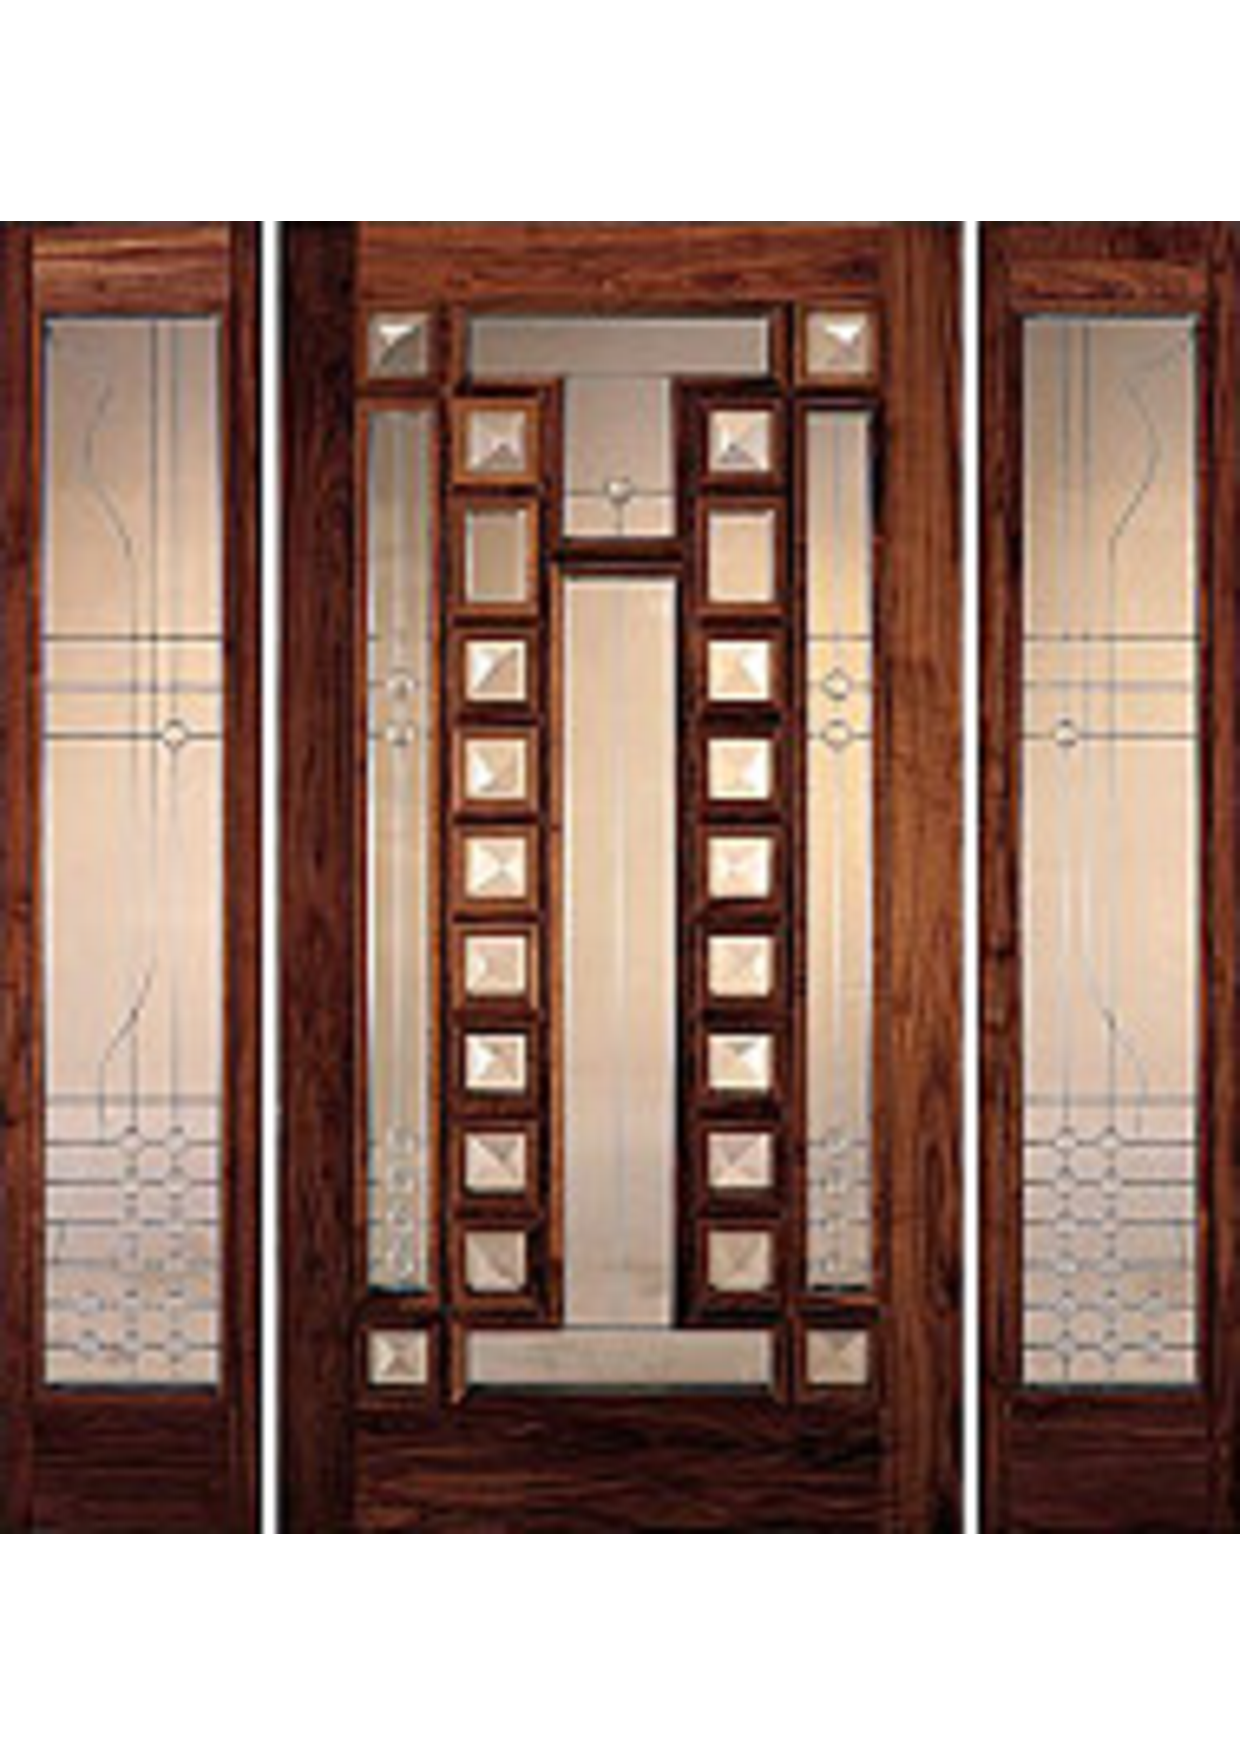 Living room door designs in india nakicphotography Front door grill designs india